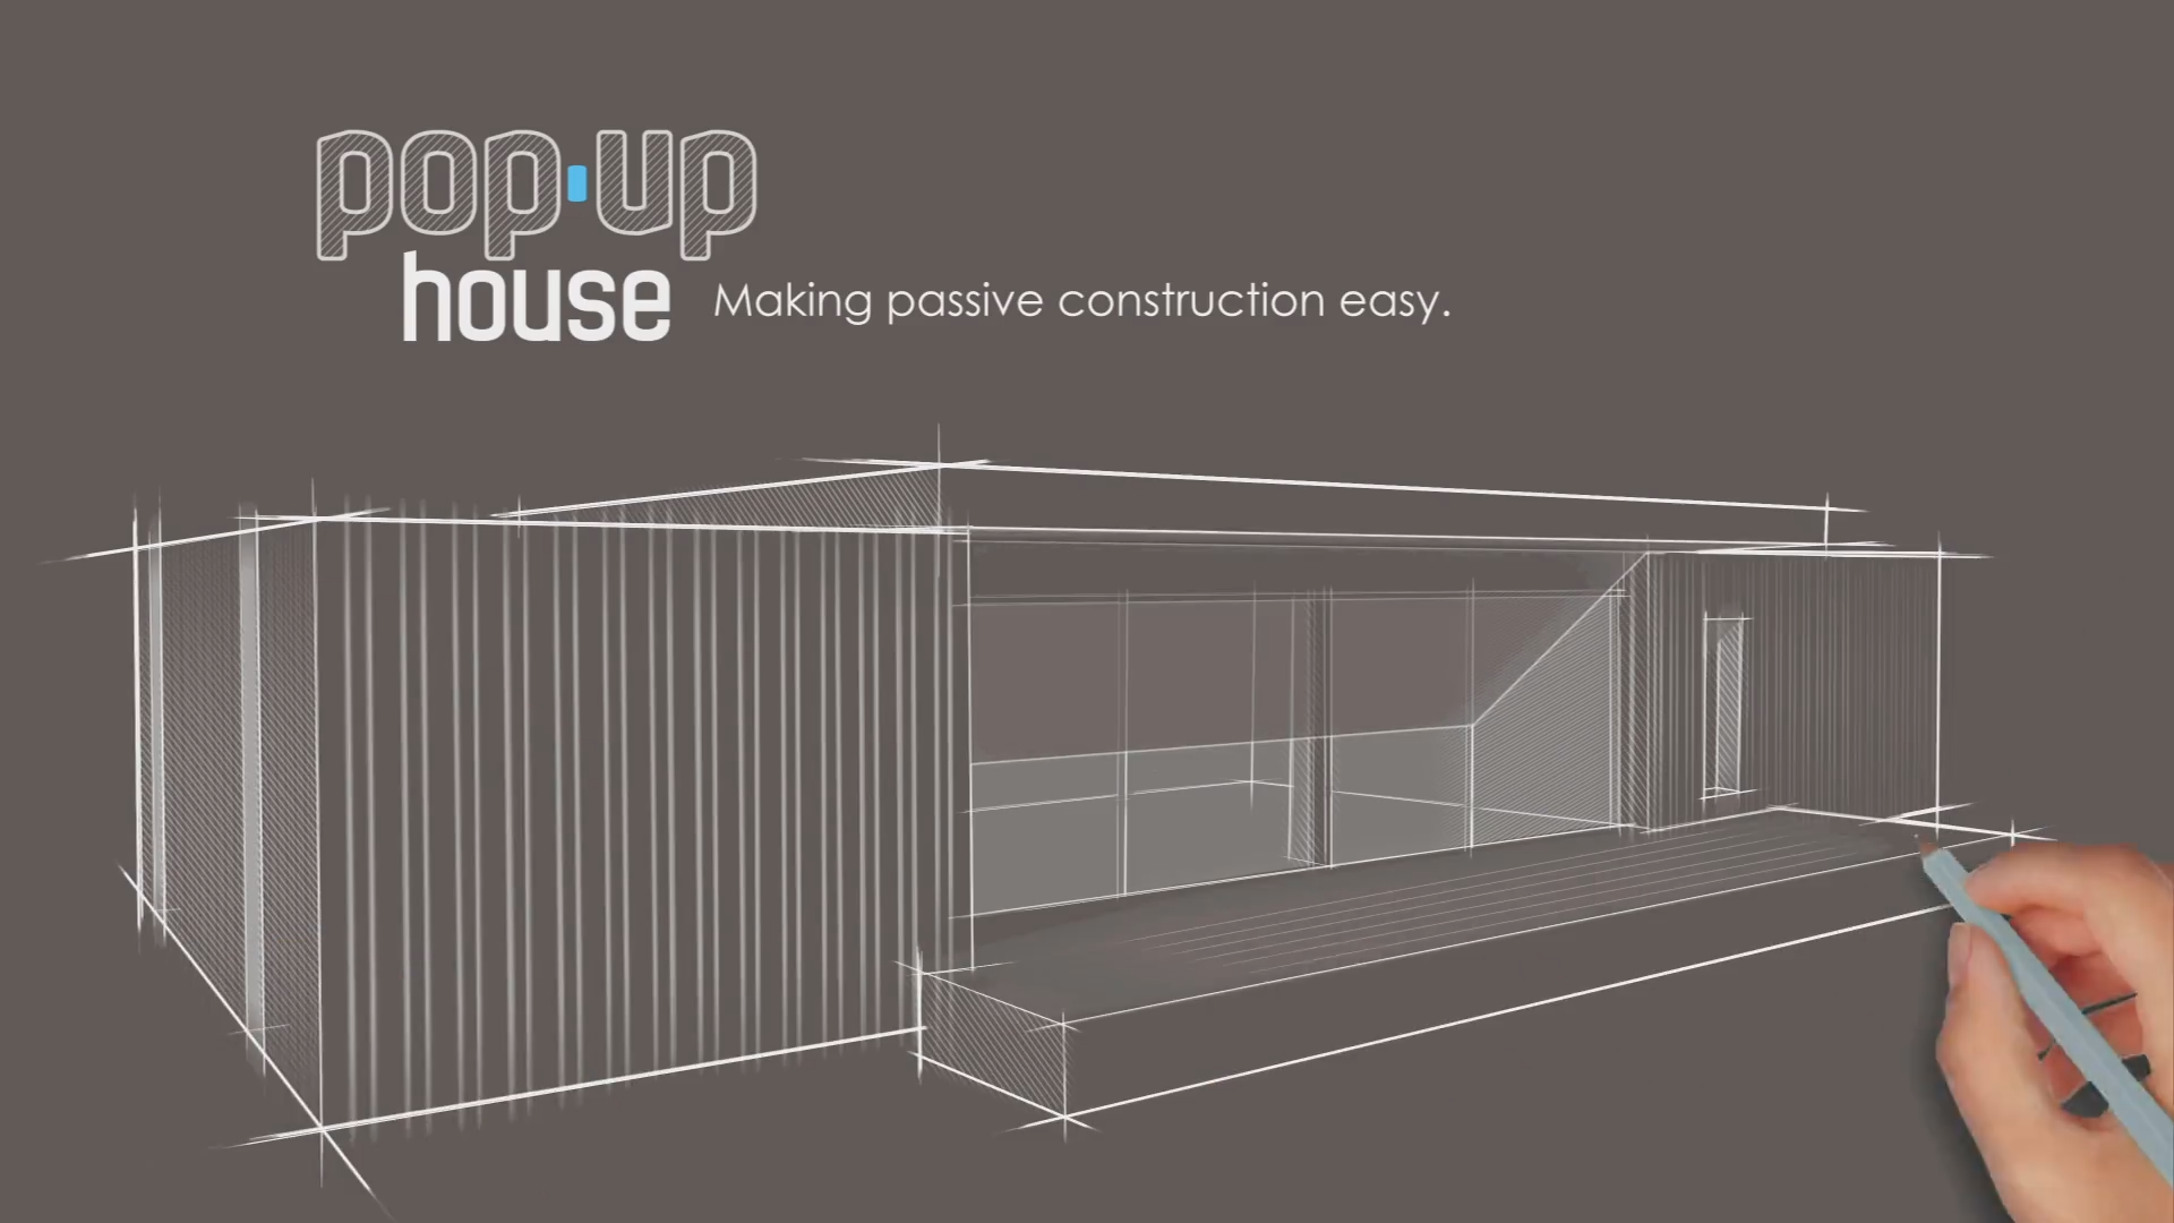 Pop up house la maison passive construite en 4 jours diazmag - Prix maison pop up ...